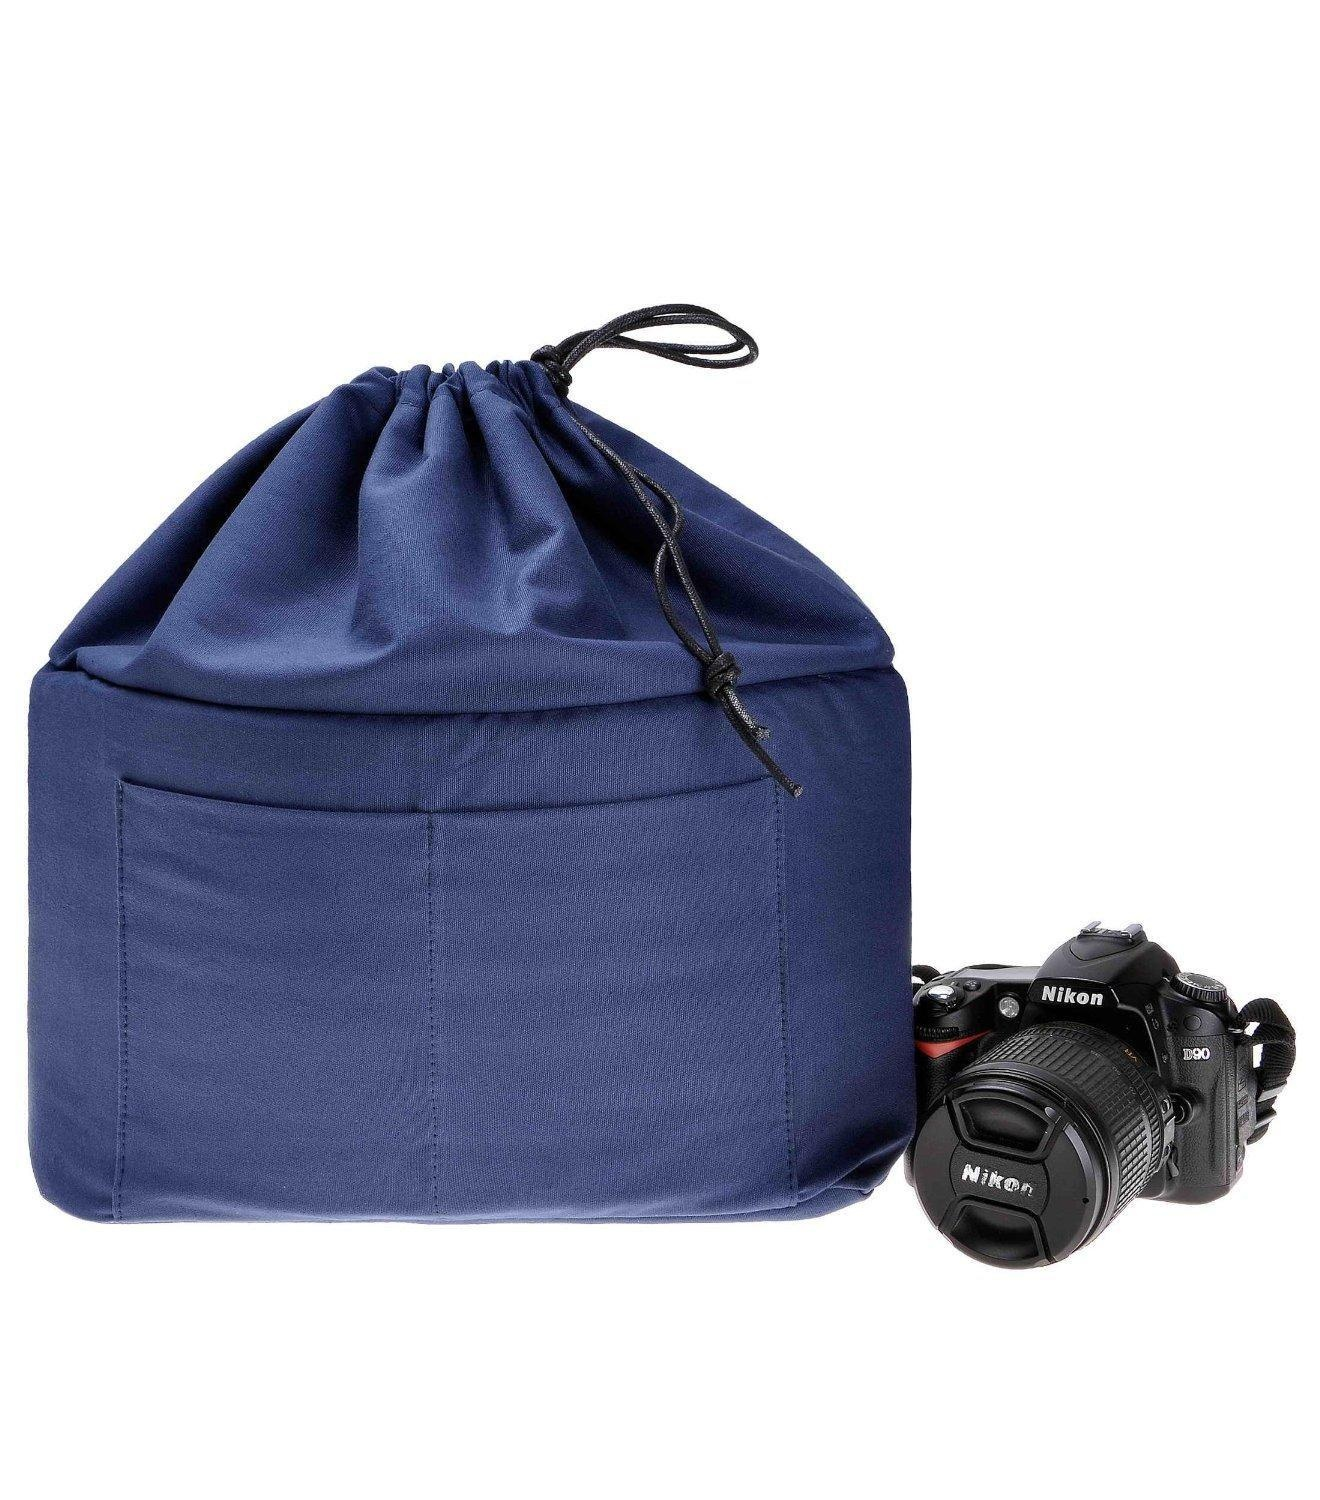 Unique Zlyc Cotton Drawstring Shockproof Dslr Slr Camera Bag Partition Padded Camerainsert Protective Case Lens Pouch Online Zlyc Cotton Drawstring Shockproof Dslr Slr Camera Bag dpreview Camera Bag Insert